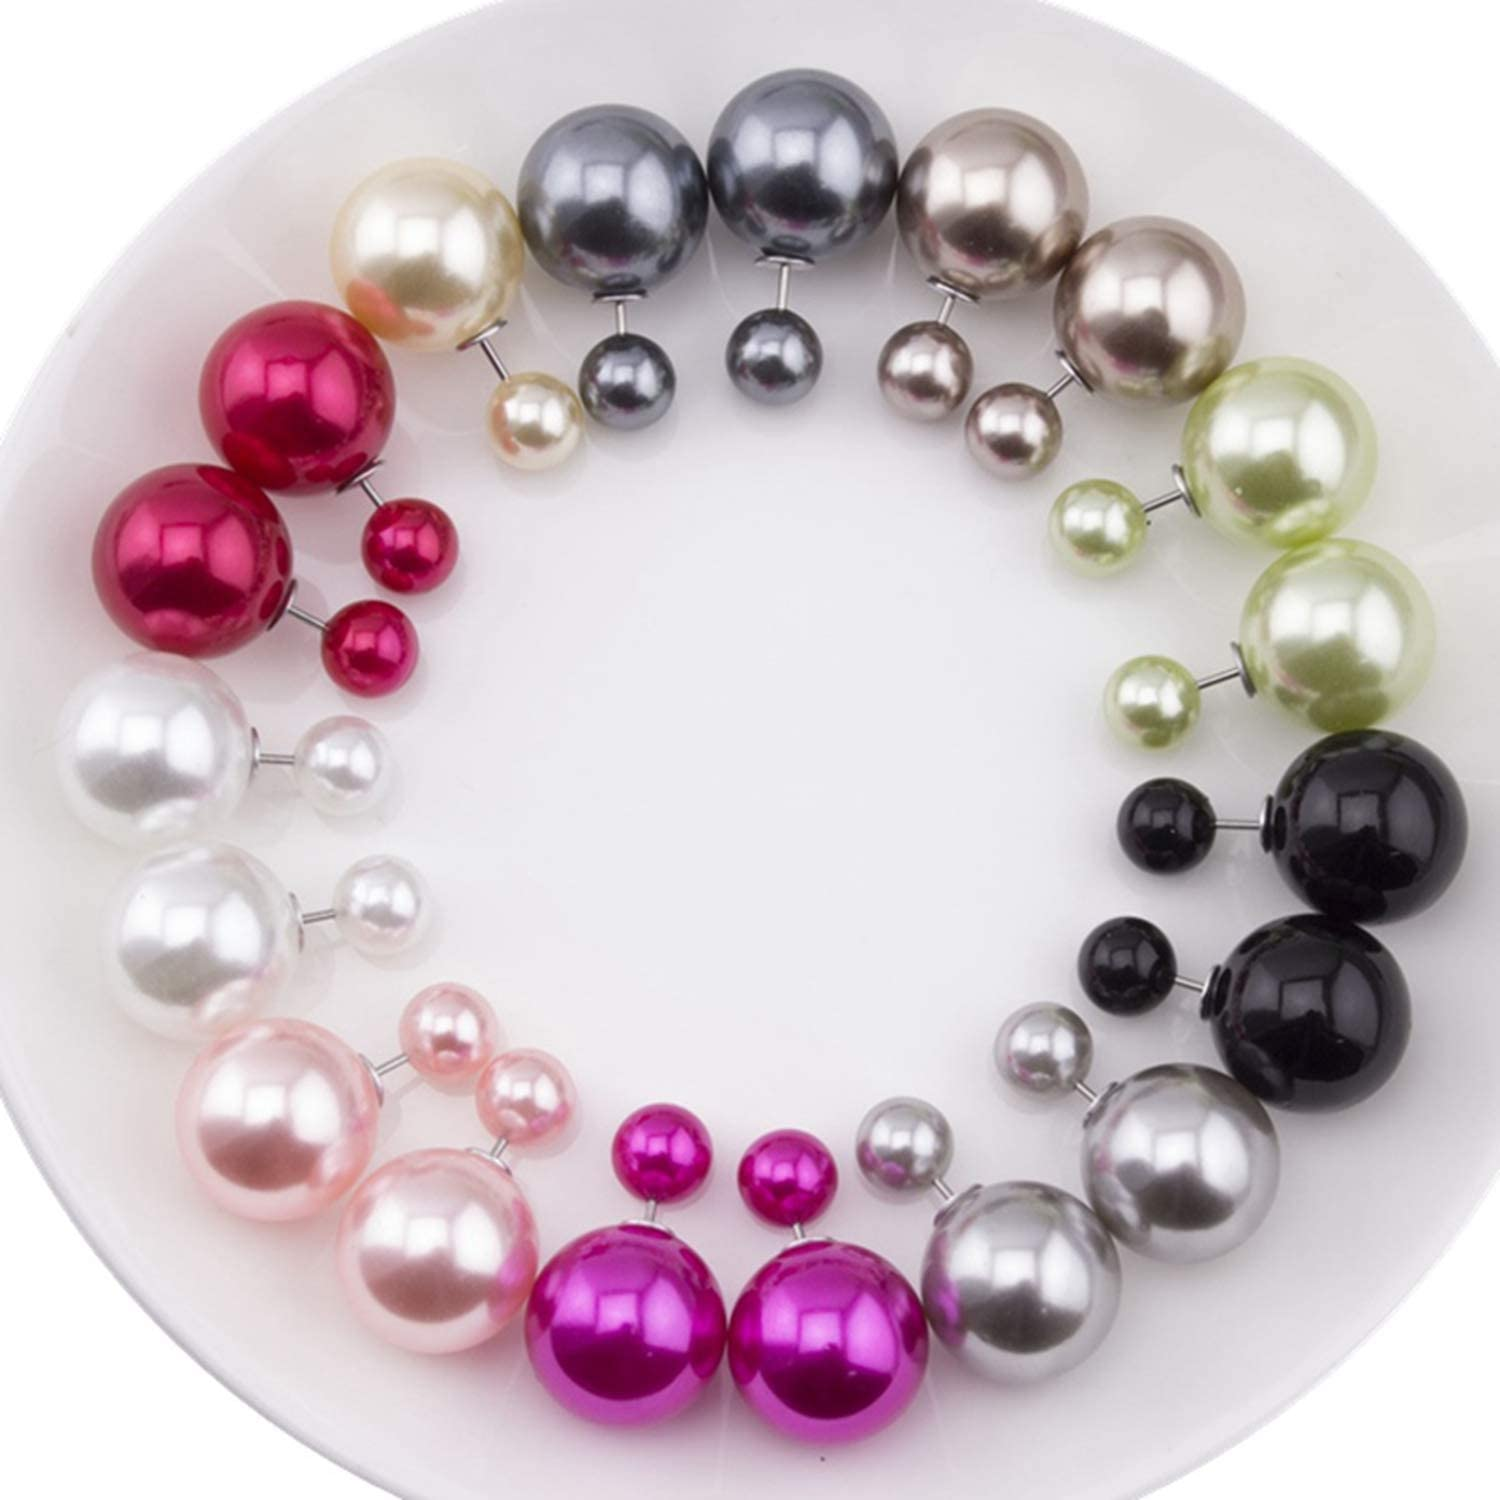 10 Pairs//lot Mix Colors Cheap Summer Style New Fashion Ball Double Sided Earrings Brincos Colored Ball Stud Earrings for Women